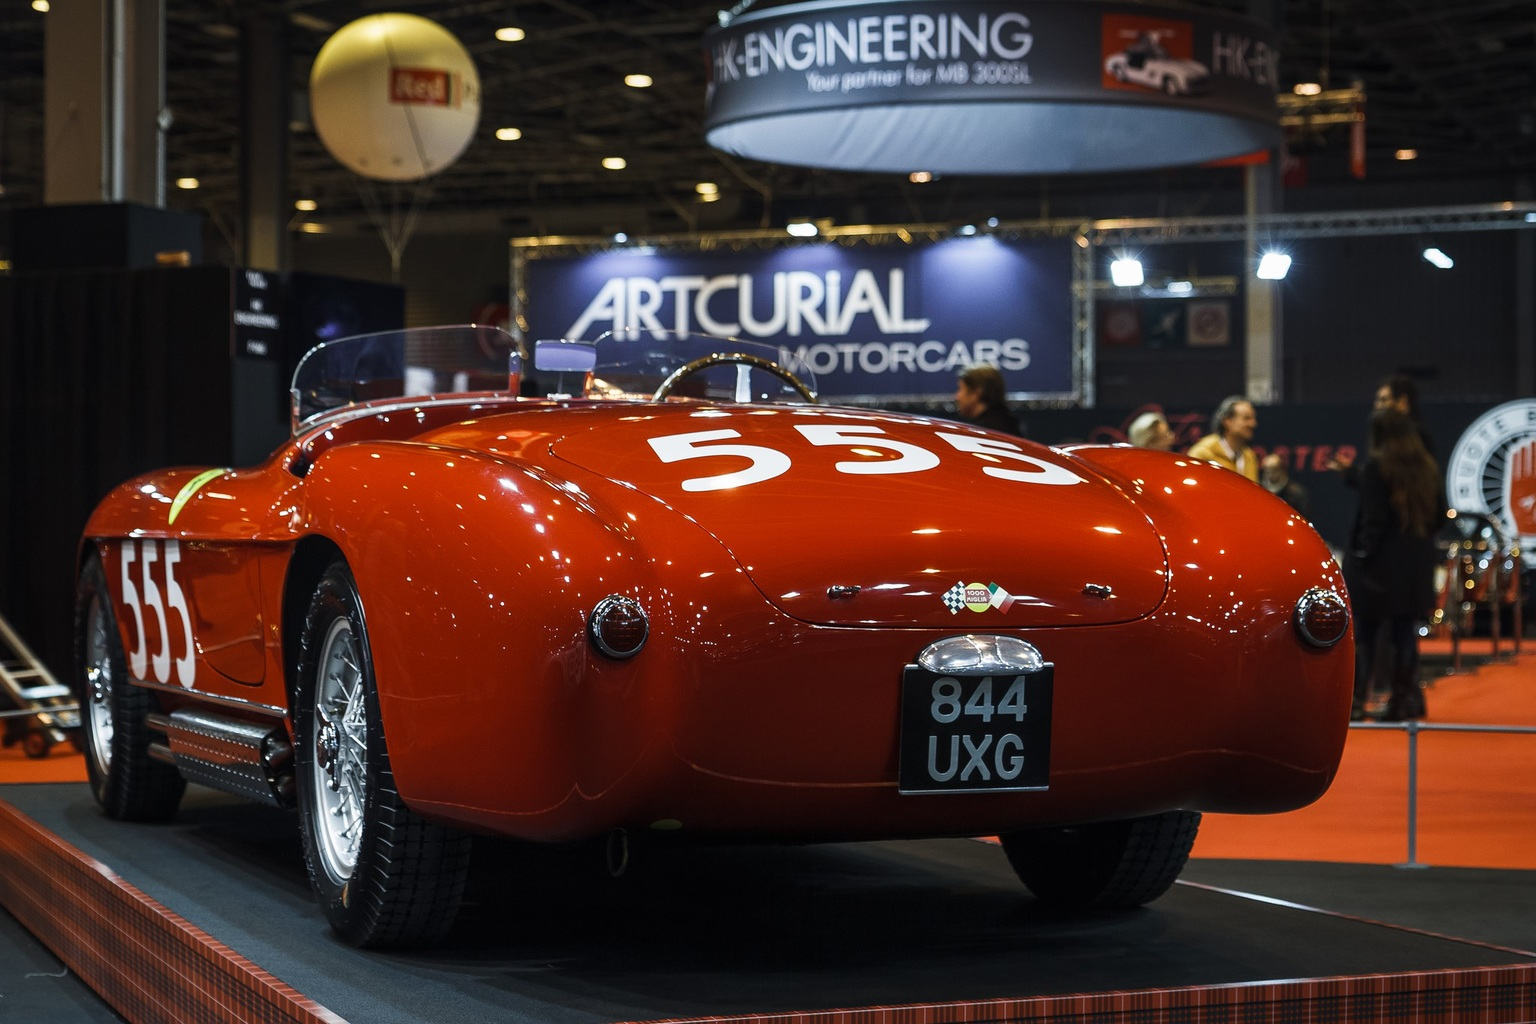 Salon r tromobile 2015 for Retromobile salon